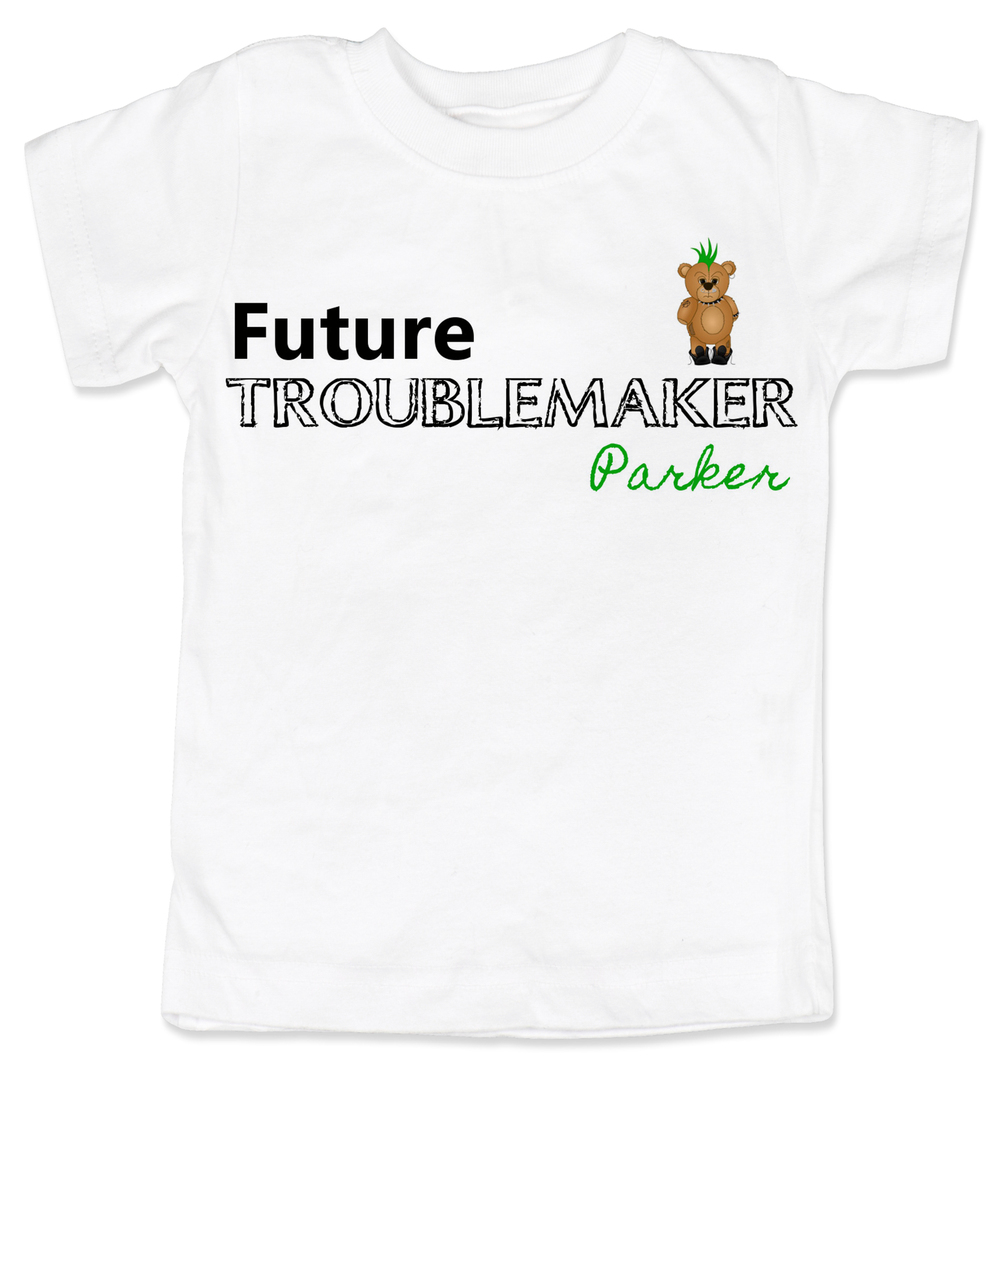 Future Troublemaker Toddler Shirt